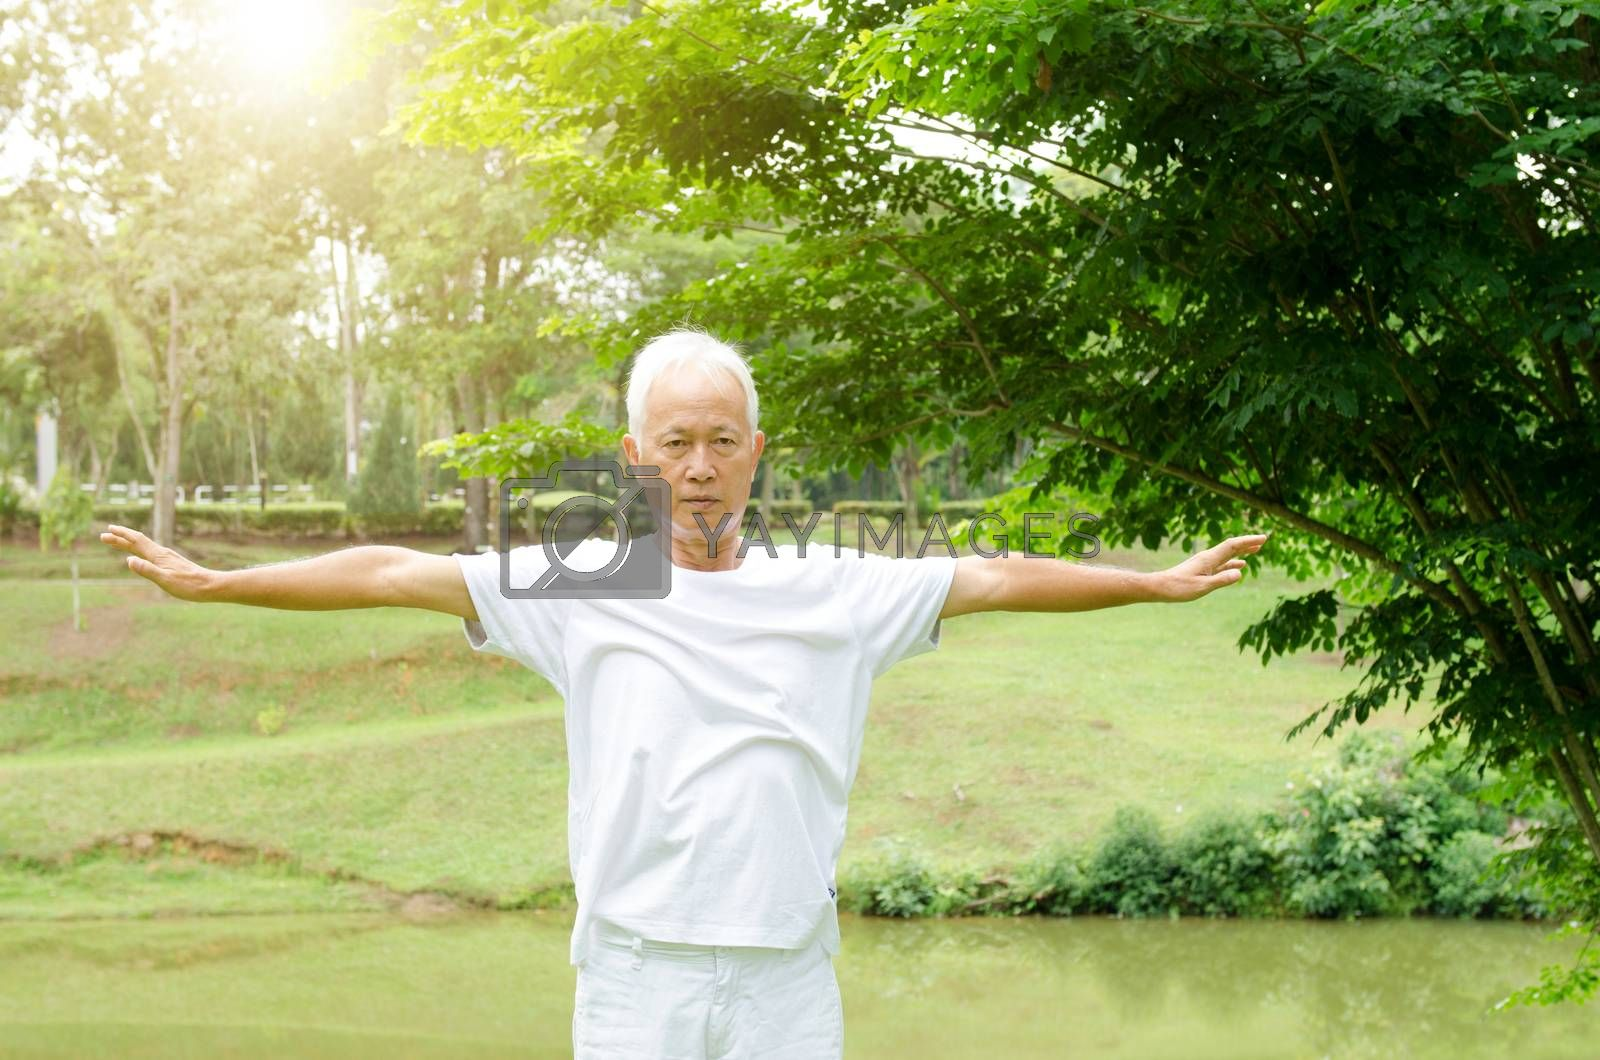 Portrait of healthy gray hair Asian senior man stretching at outdoor park in morning.